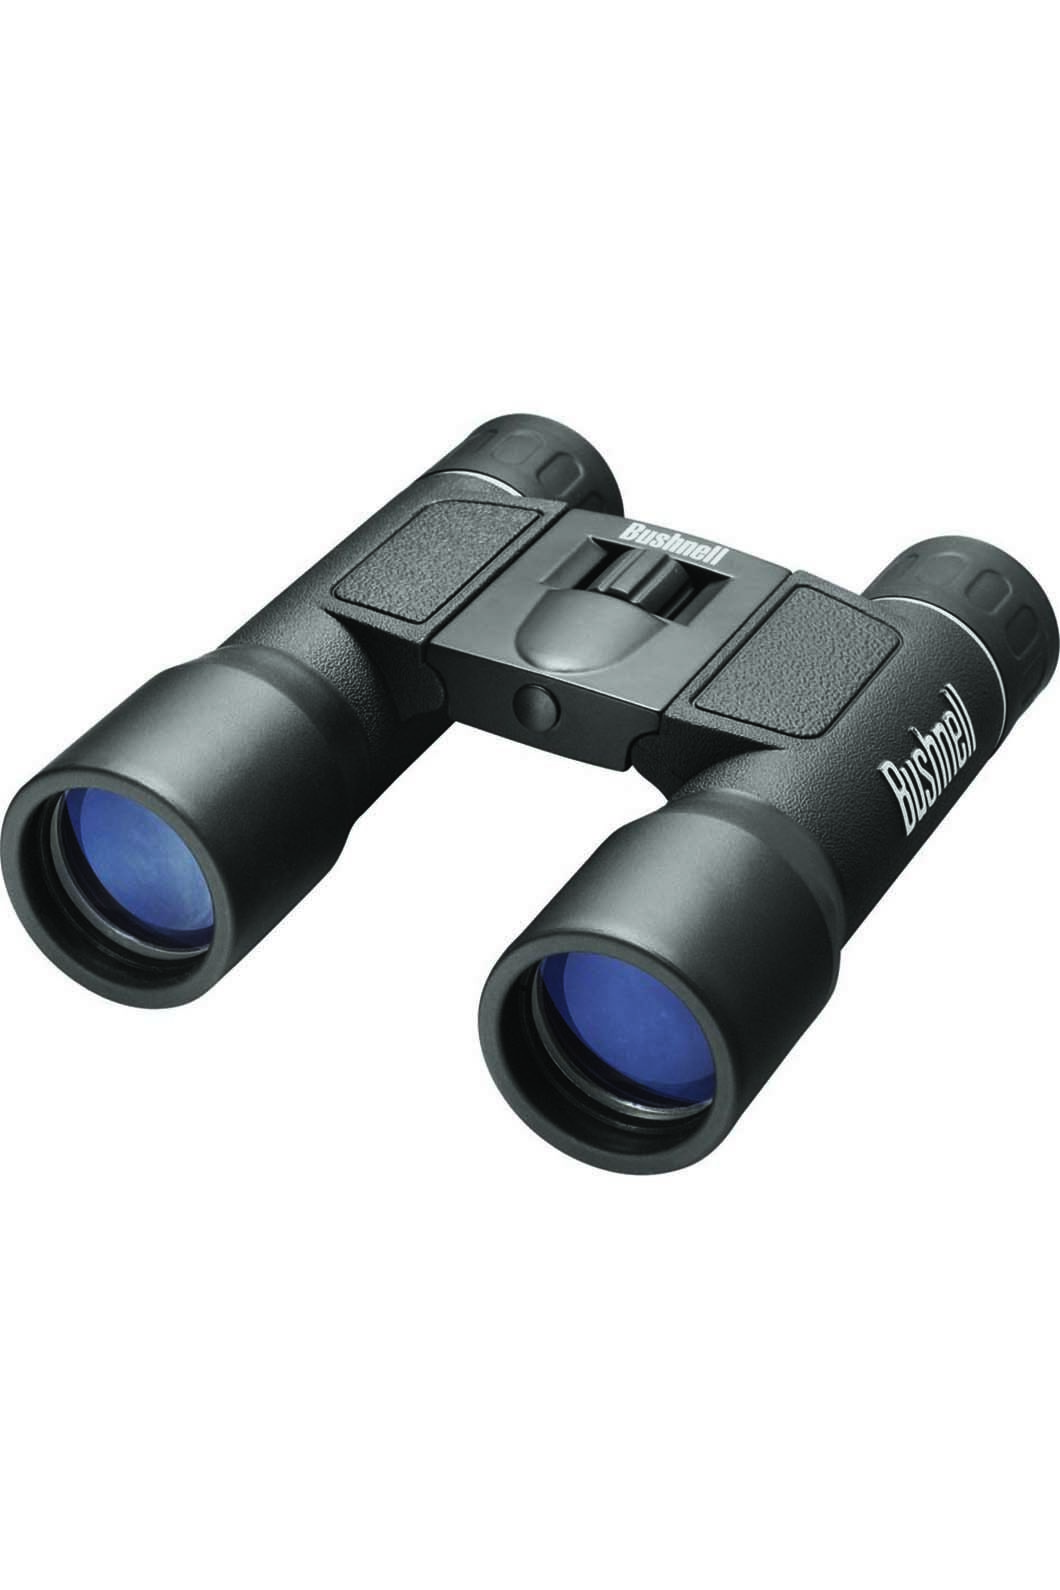 Bushnell 16 x 32 Powerview Binoculars, None, hi-res